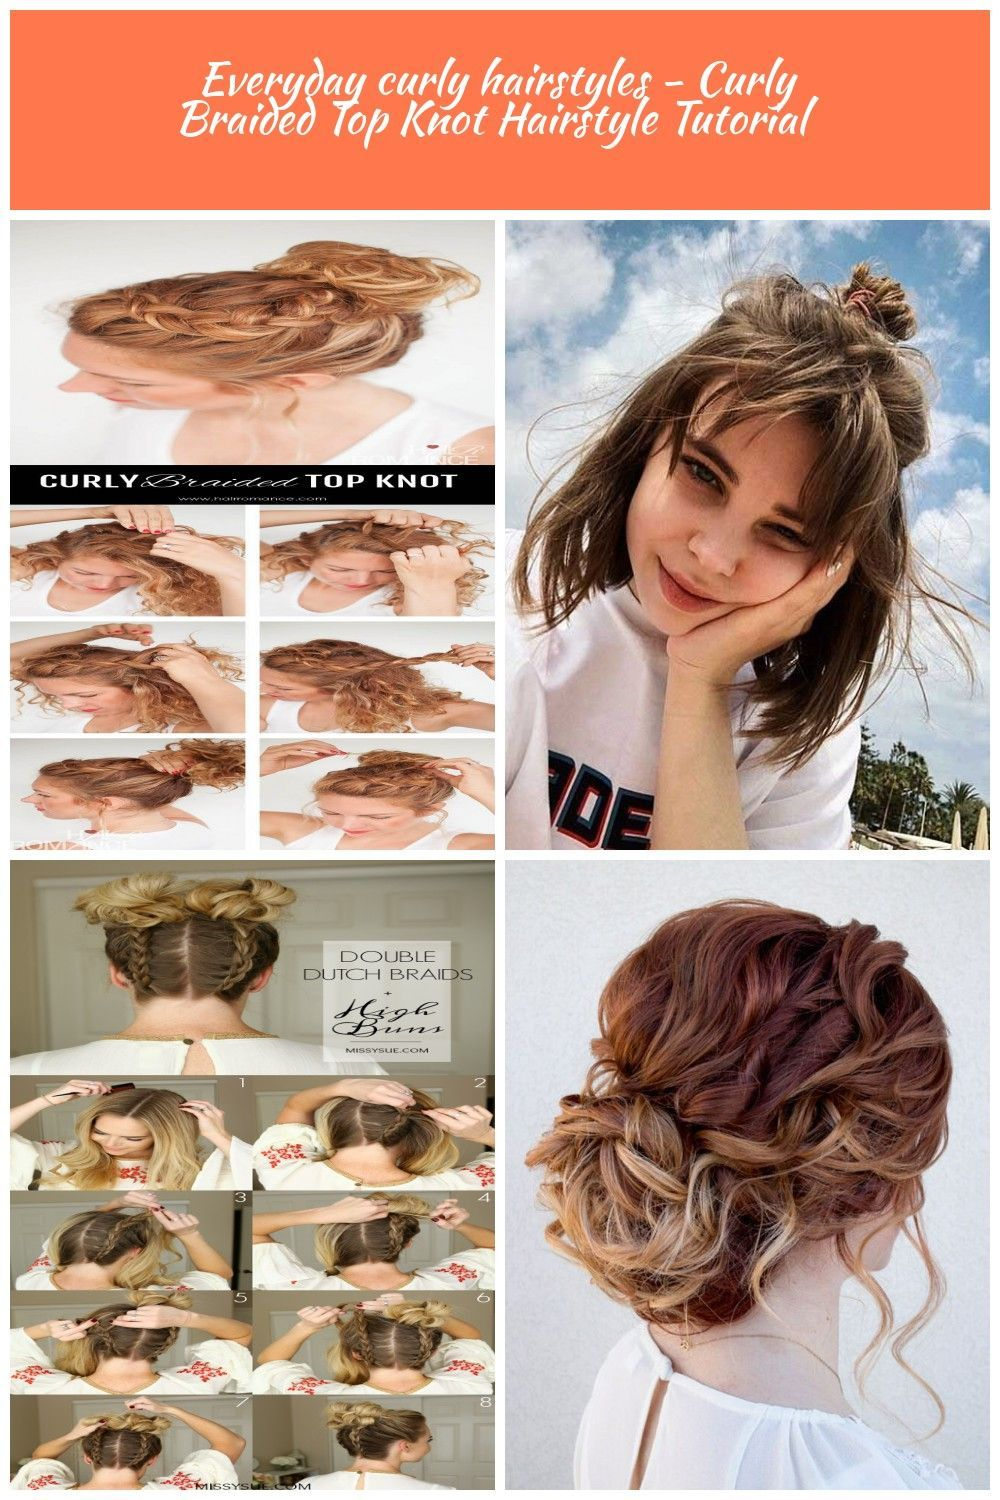 Everyday Curly Hairstyles Curly Braided Top Knot Hairstyle Tutorial Curly Hairstyles Everyday Curl Top Knot Hairstyles Hair Styles Braided Top Knot Hairstyle